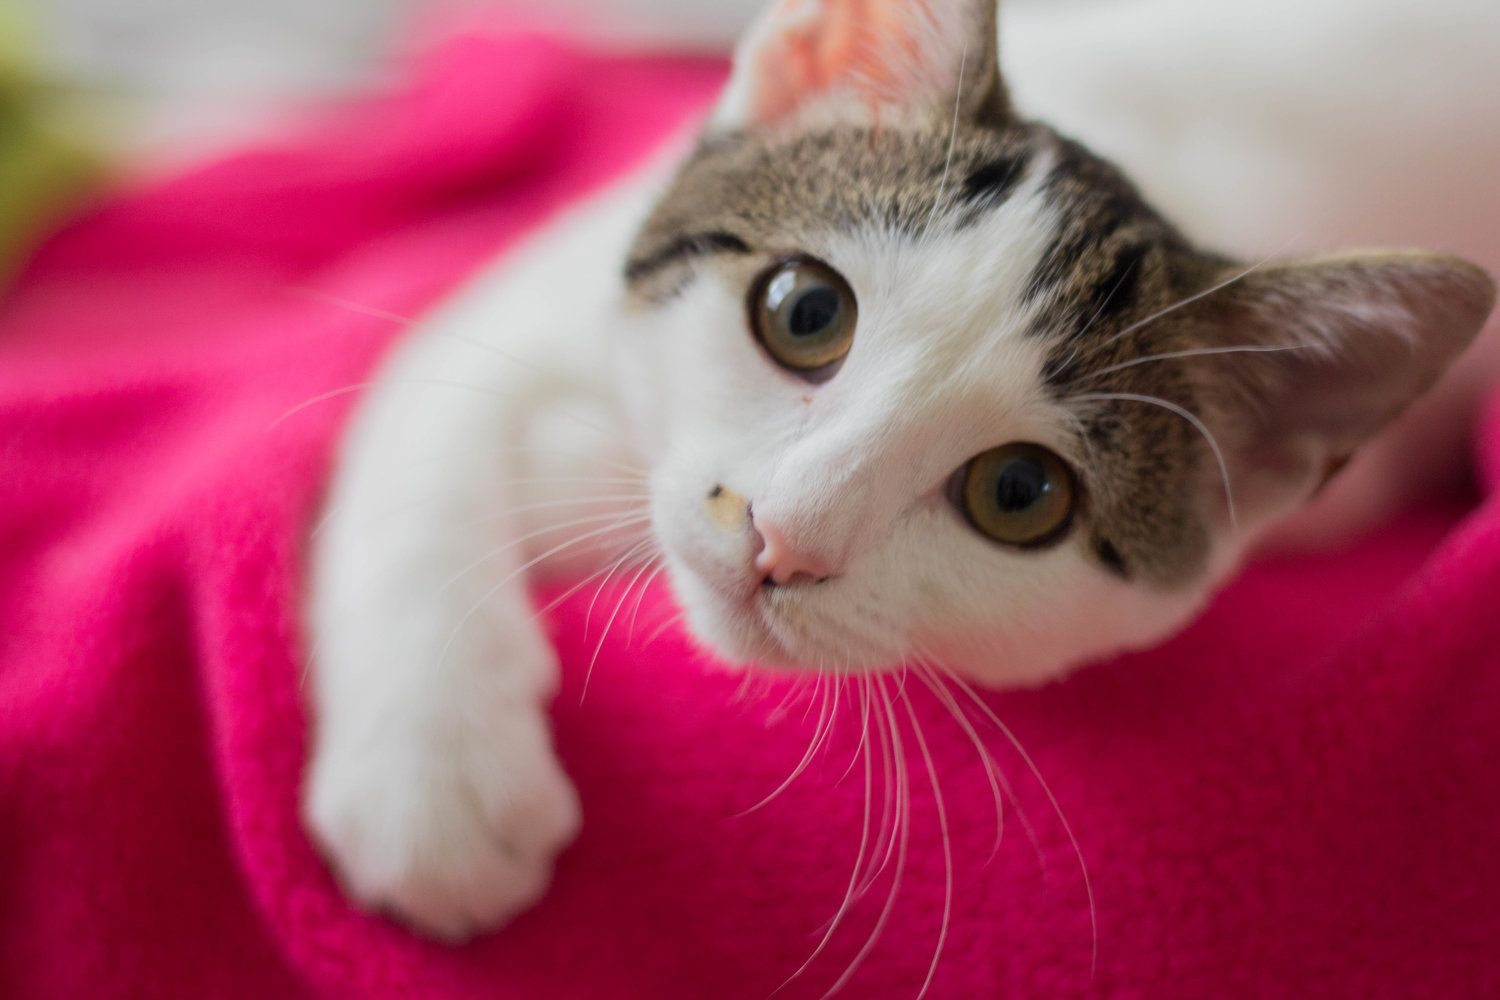 How Much Does A Cat Actually Cost Cat Adoption Tips Kitten Adoption Checklist How To Adopt A Cat Dallas Pets Kitten Adoption Cat Adoption Adopting A Child